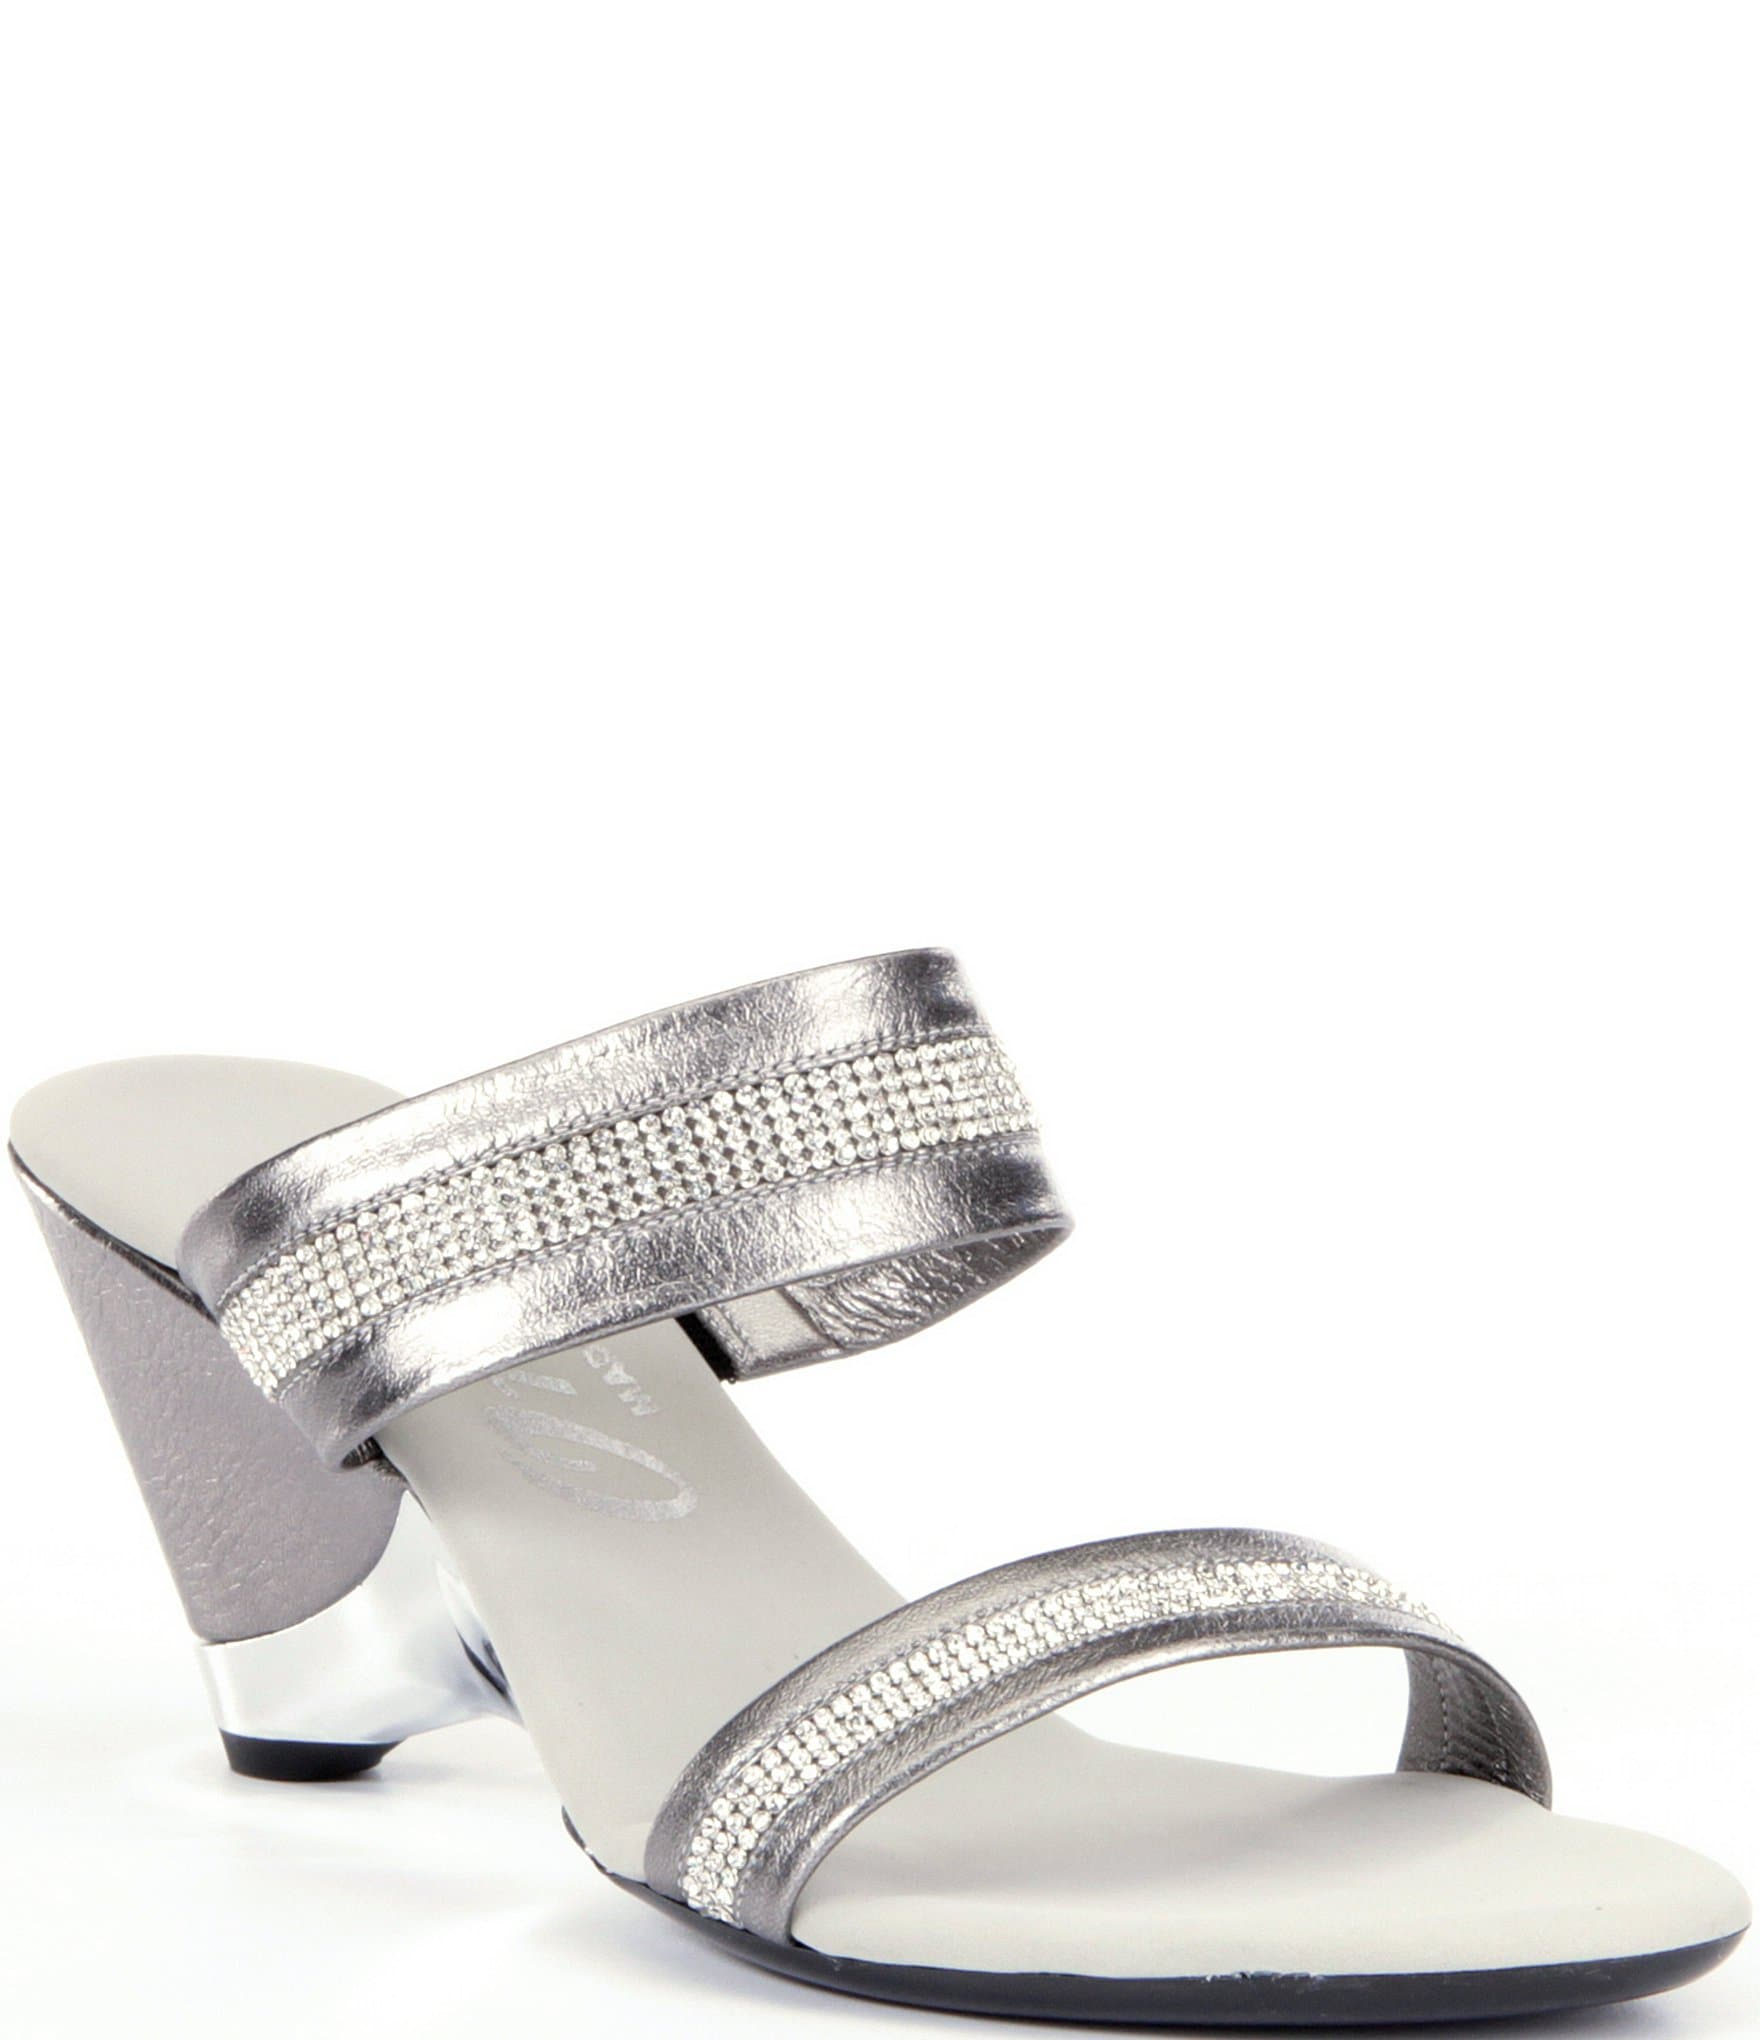 Onex Stunning Jeweled Metallic Leather Wedge Dress Sandals Dillards